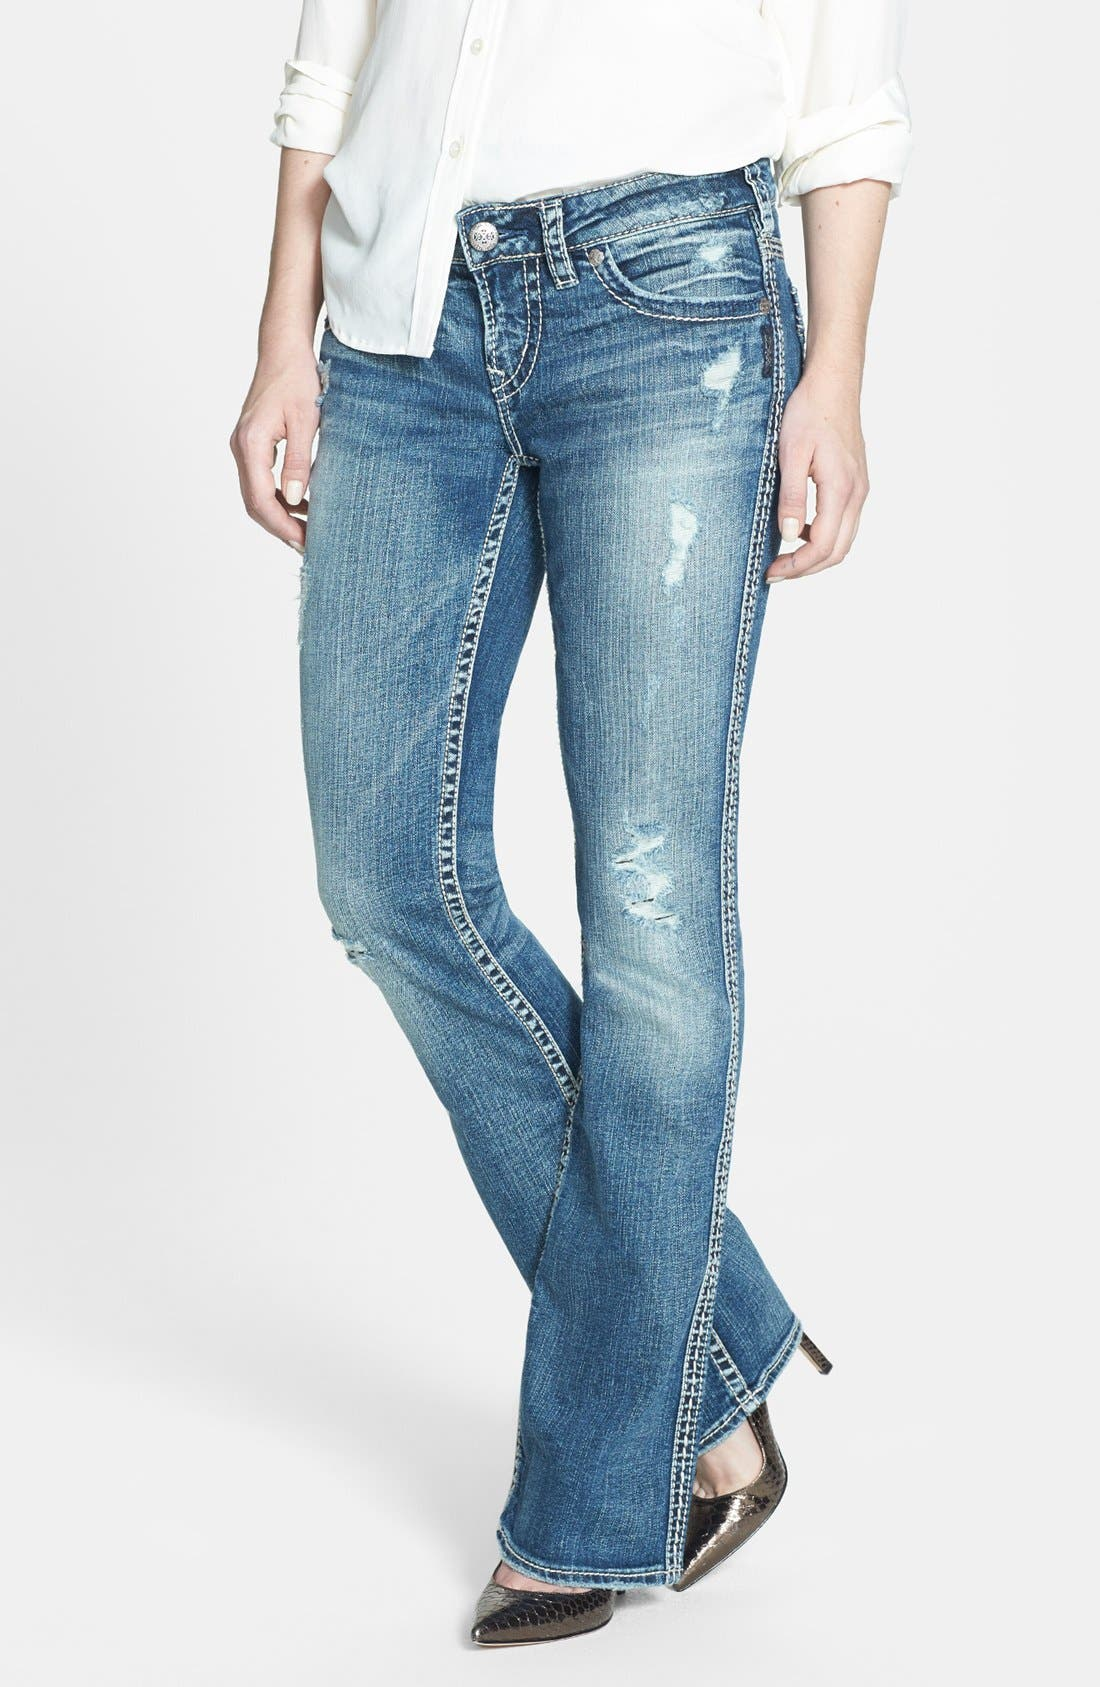 Main Image - Silver Jeans Co. 'Aiko' Faux Flap Pocket Distressed Bootcut Jeans (Indigo)